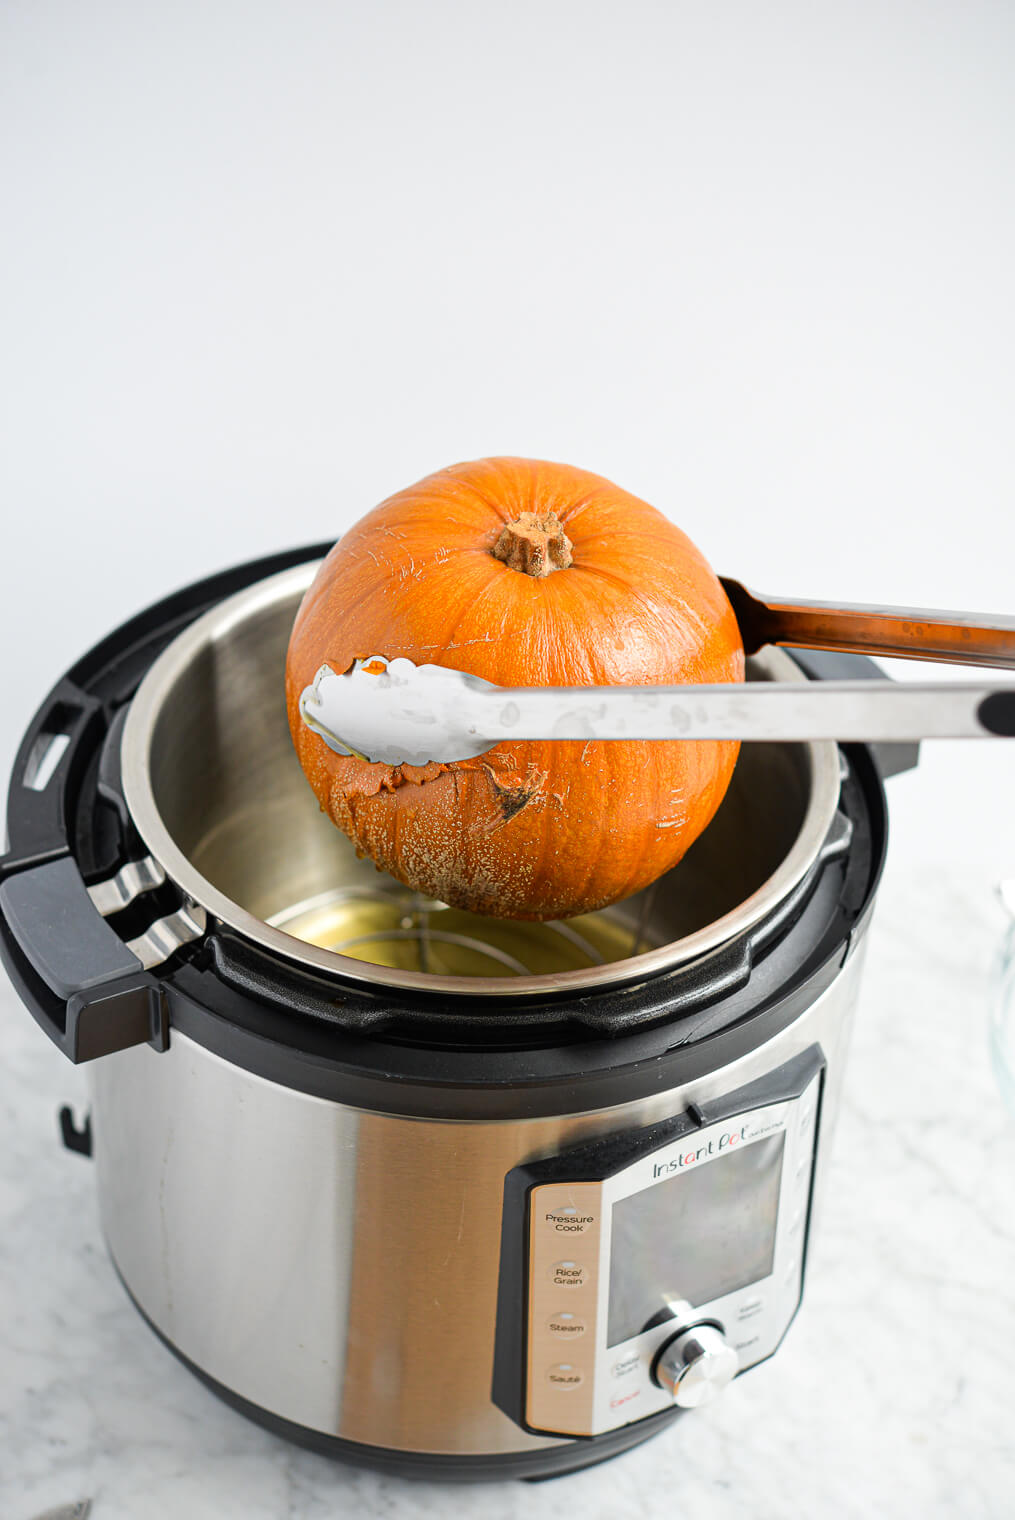 the side view of someone removing a cooked baking pumpkin from the instant pot using a pair of stainless tongs